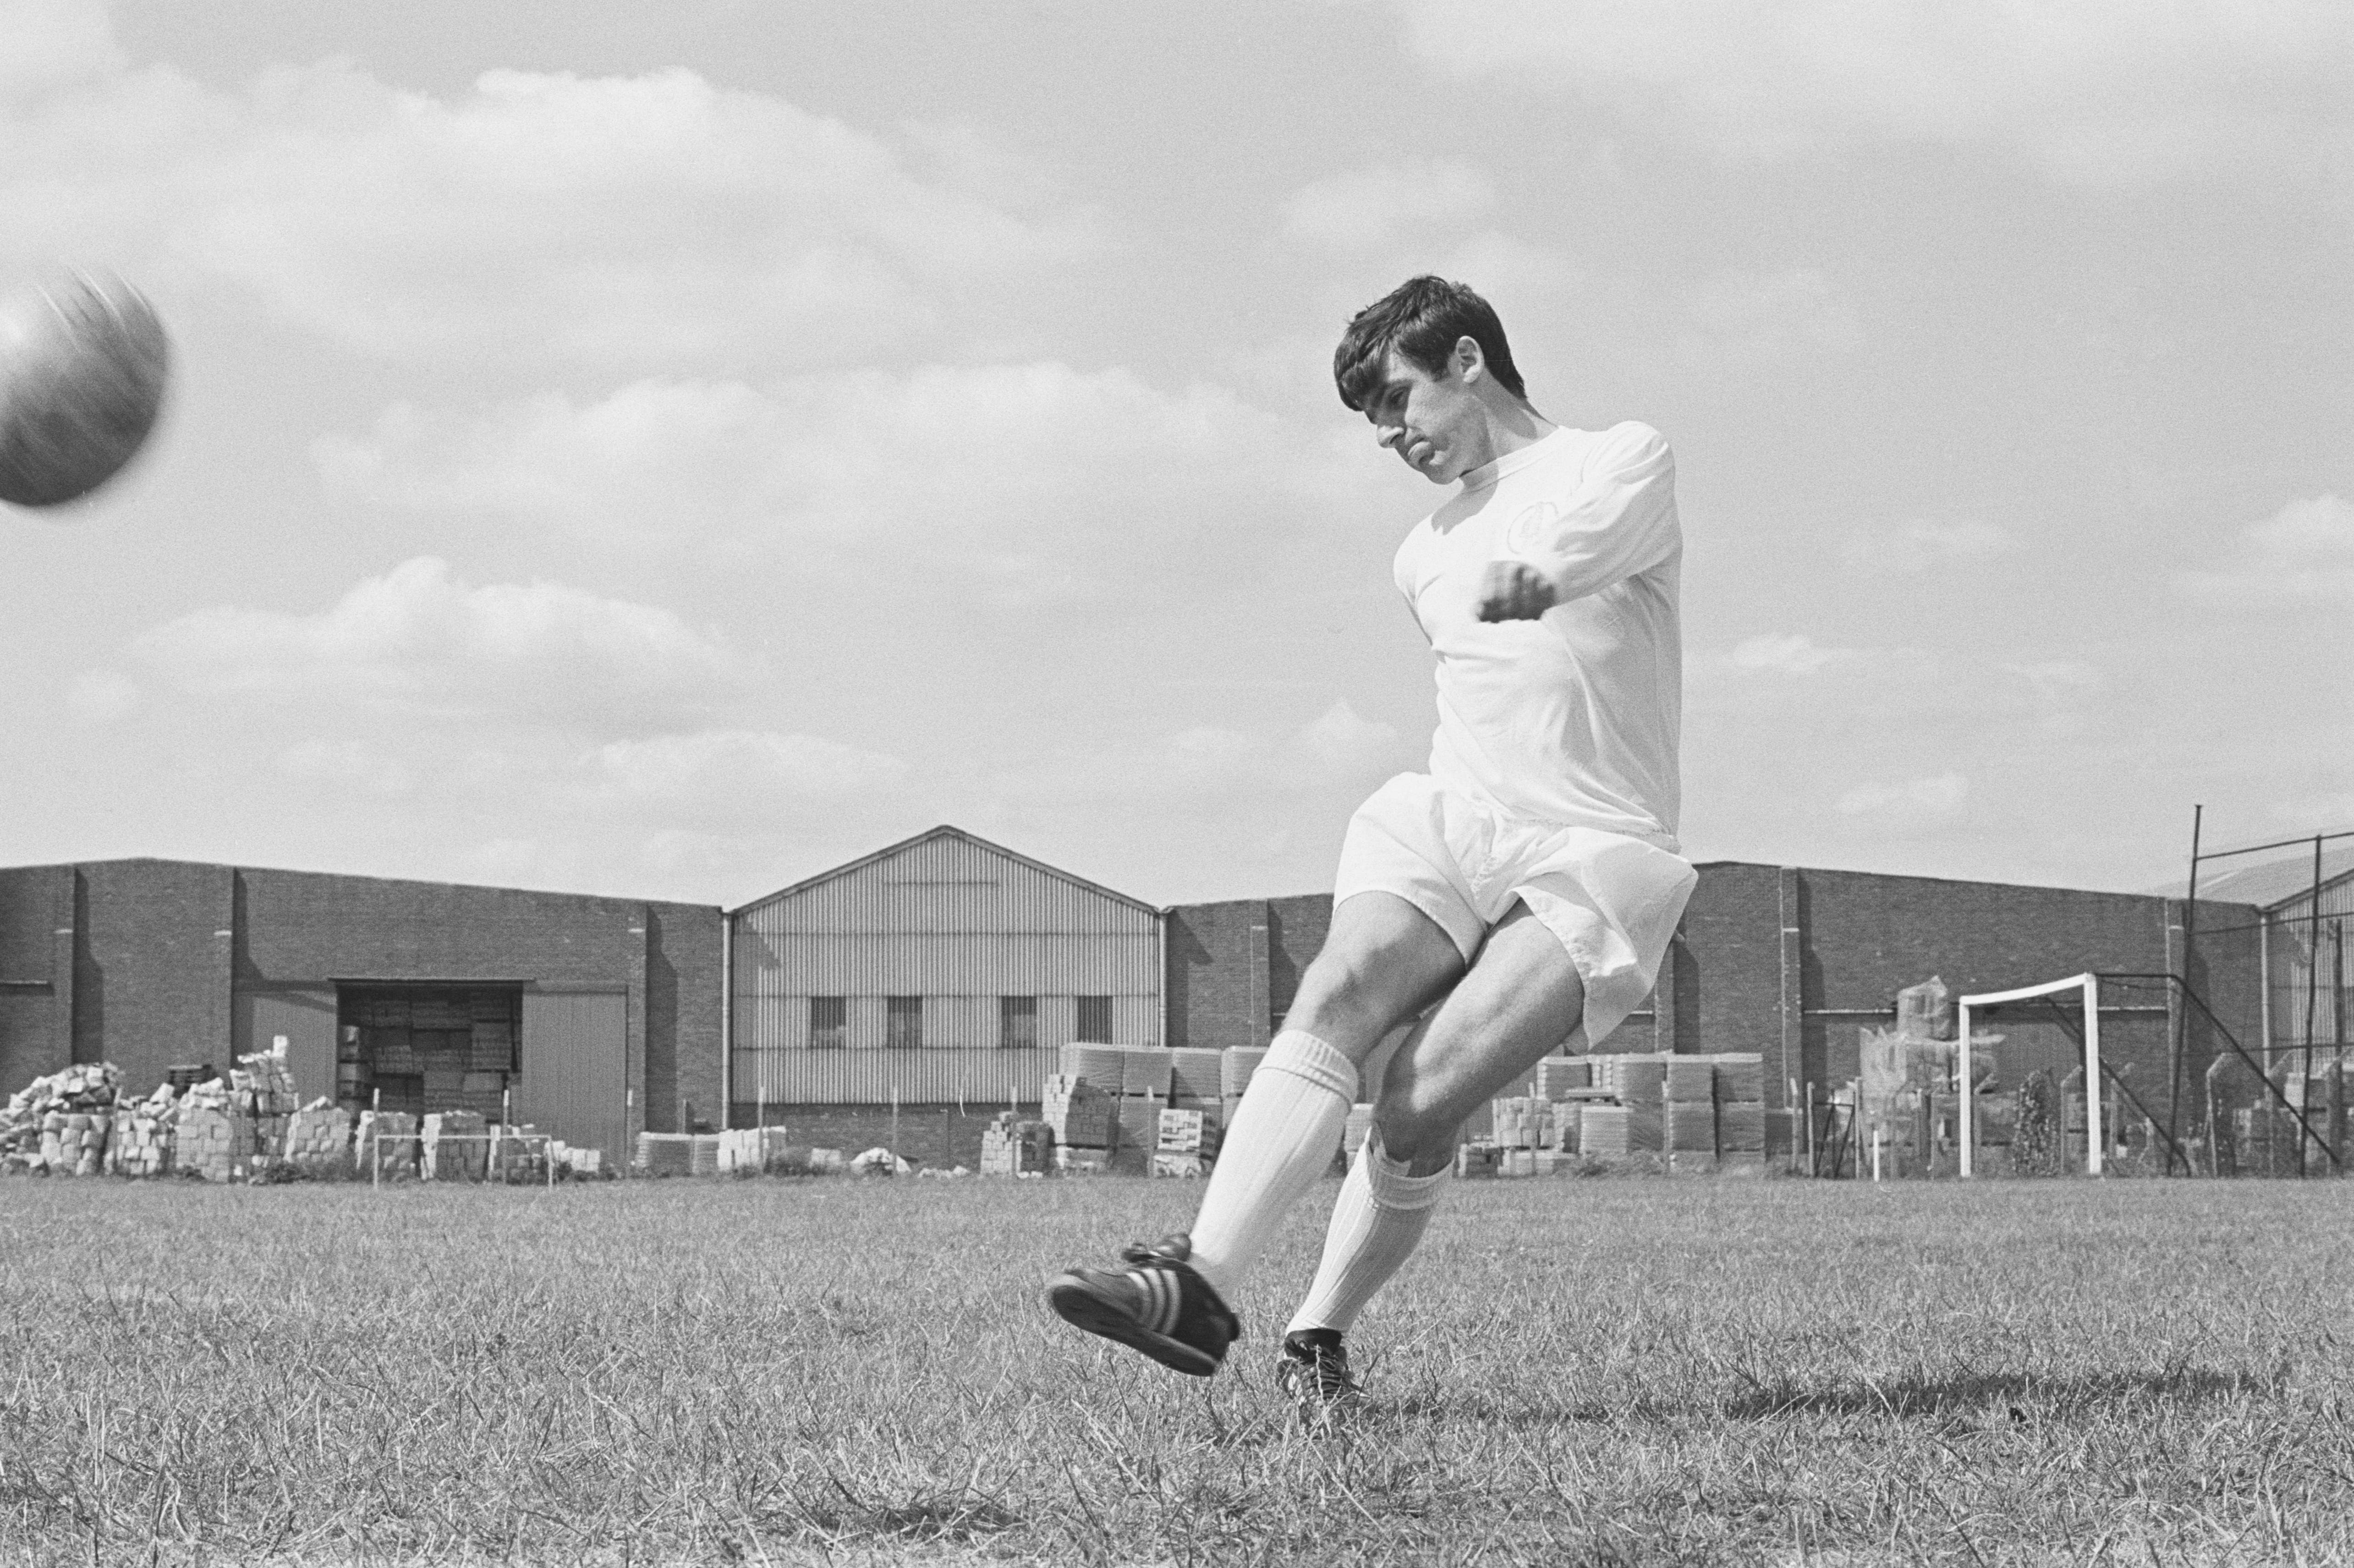 Peter Lorimer obituary: The Leeds United legend who played at 90 miles an hour